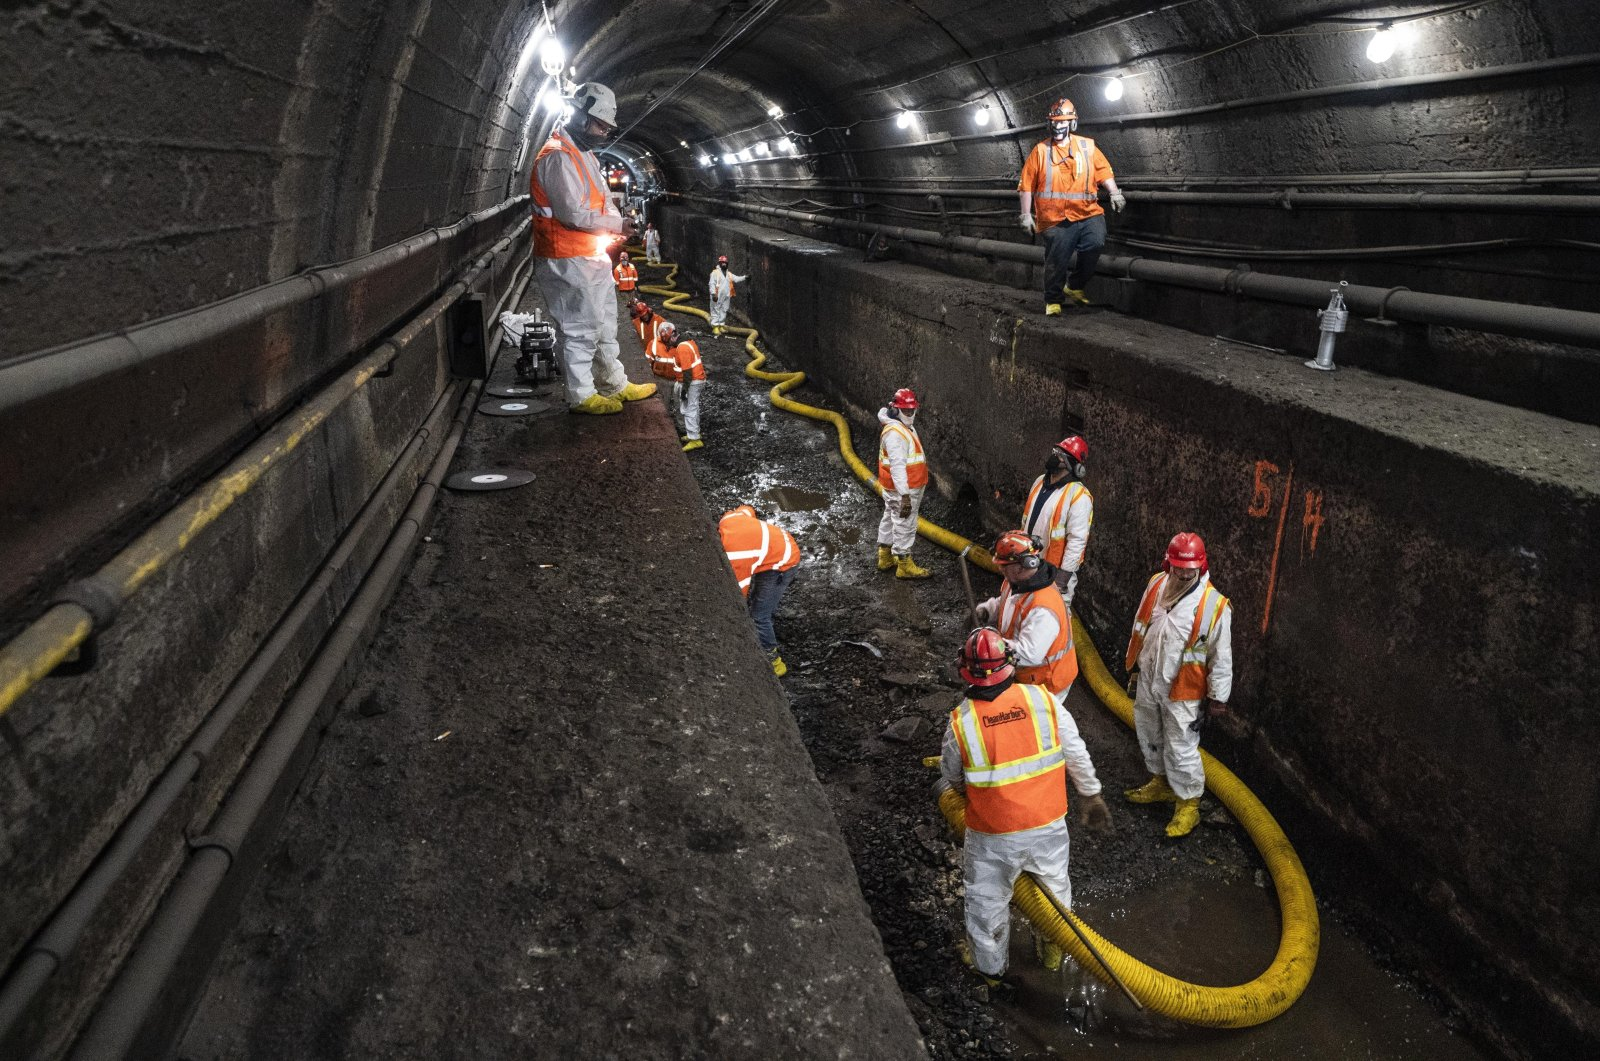 Amtrak workers perform tunnel repairs to a partially flooded train track bed, Weehawken, N.J., the U.S., March 20, 2021. (AP Photo / John Minchillo)